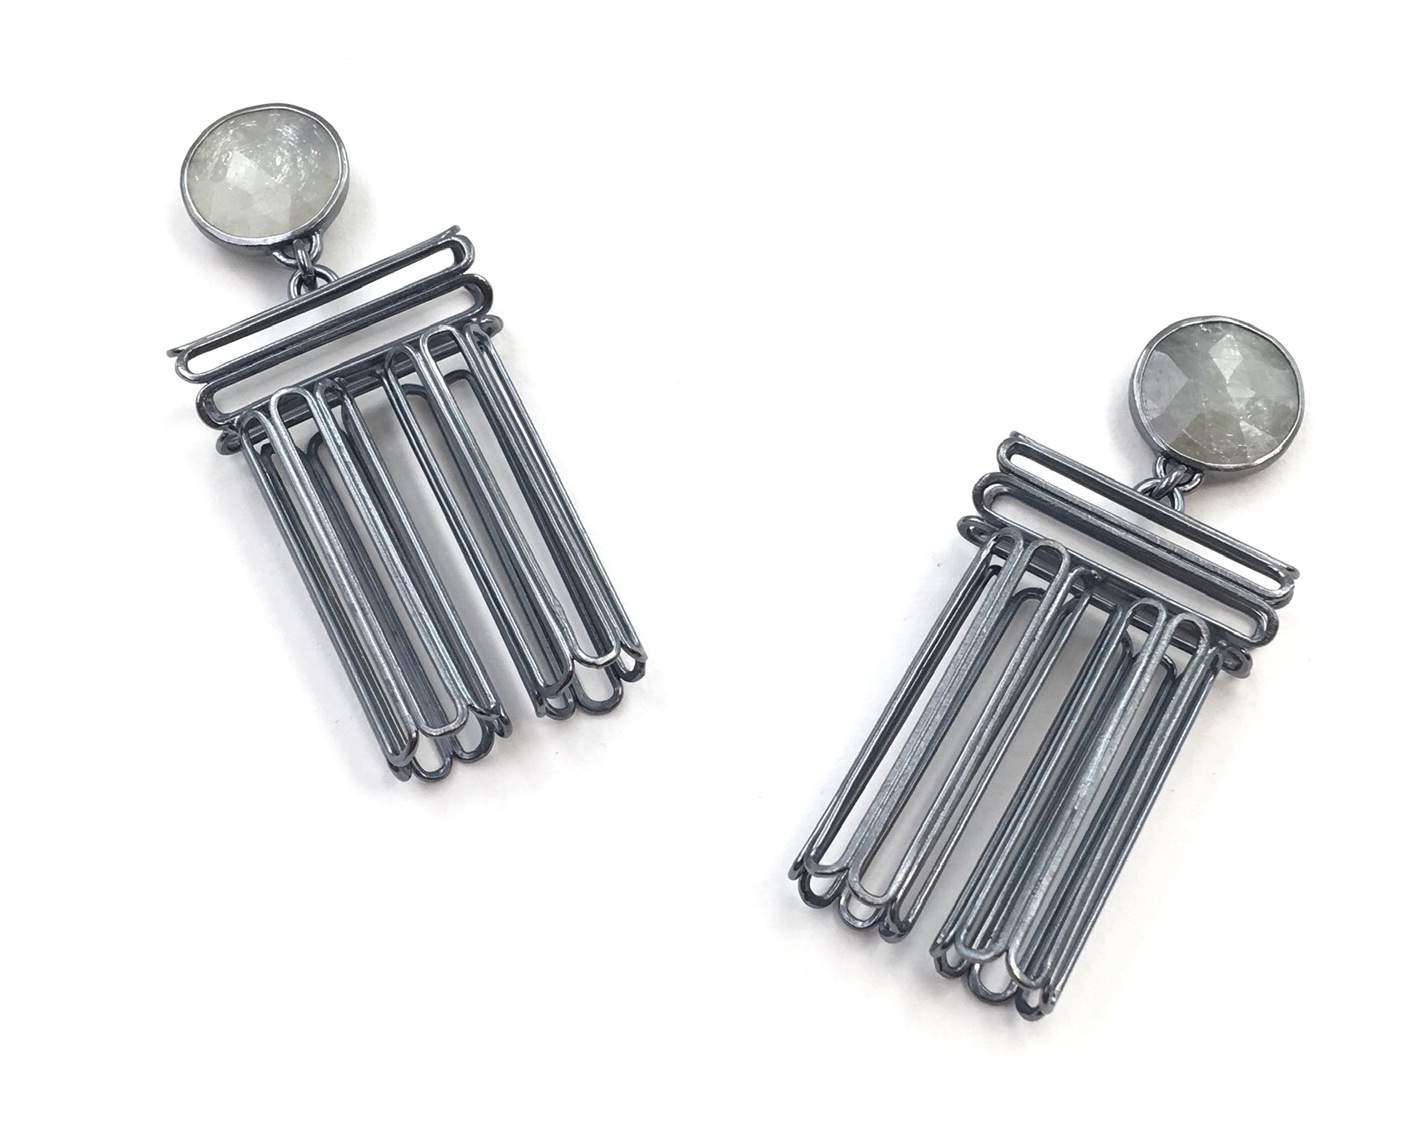 CYLINDRICAL SAPPHIRE STACK EARRINGS  Oxidized sterling silver, rose-cut sapphire